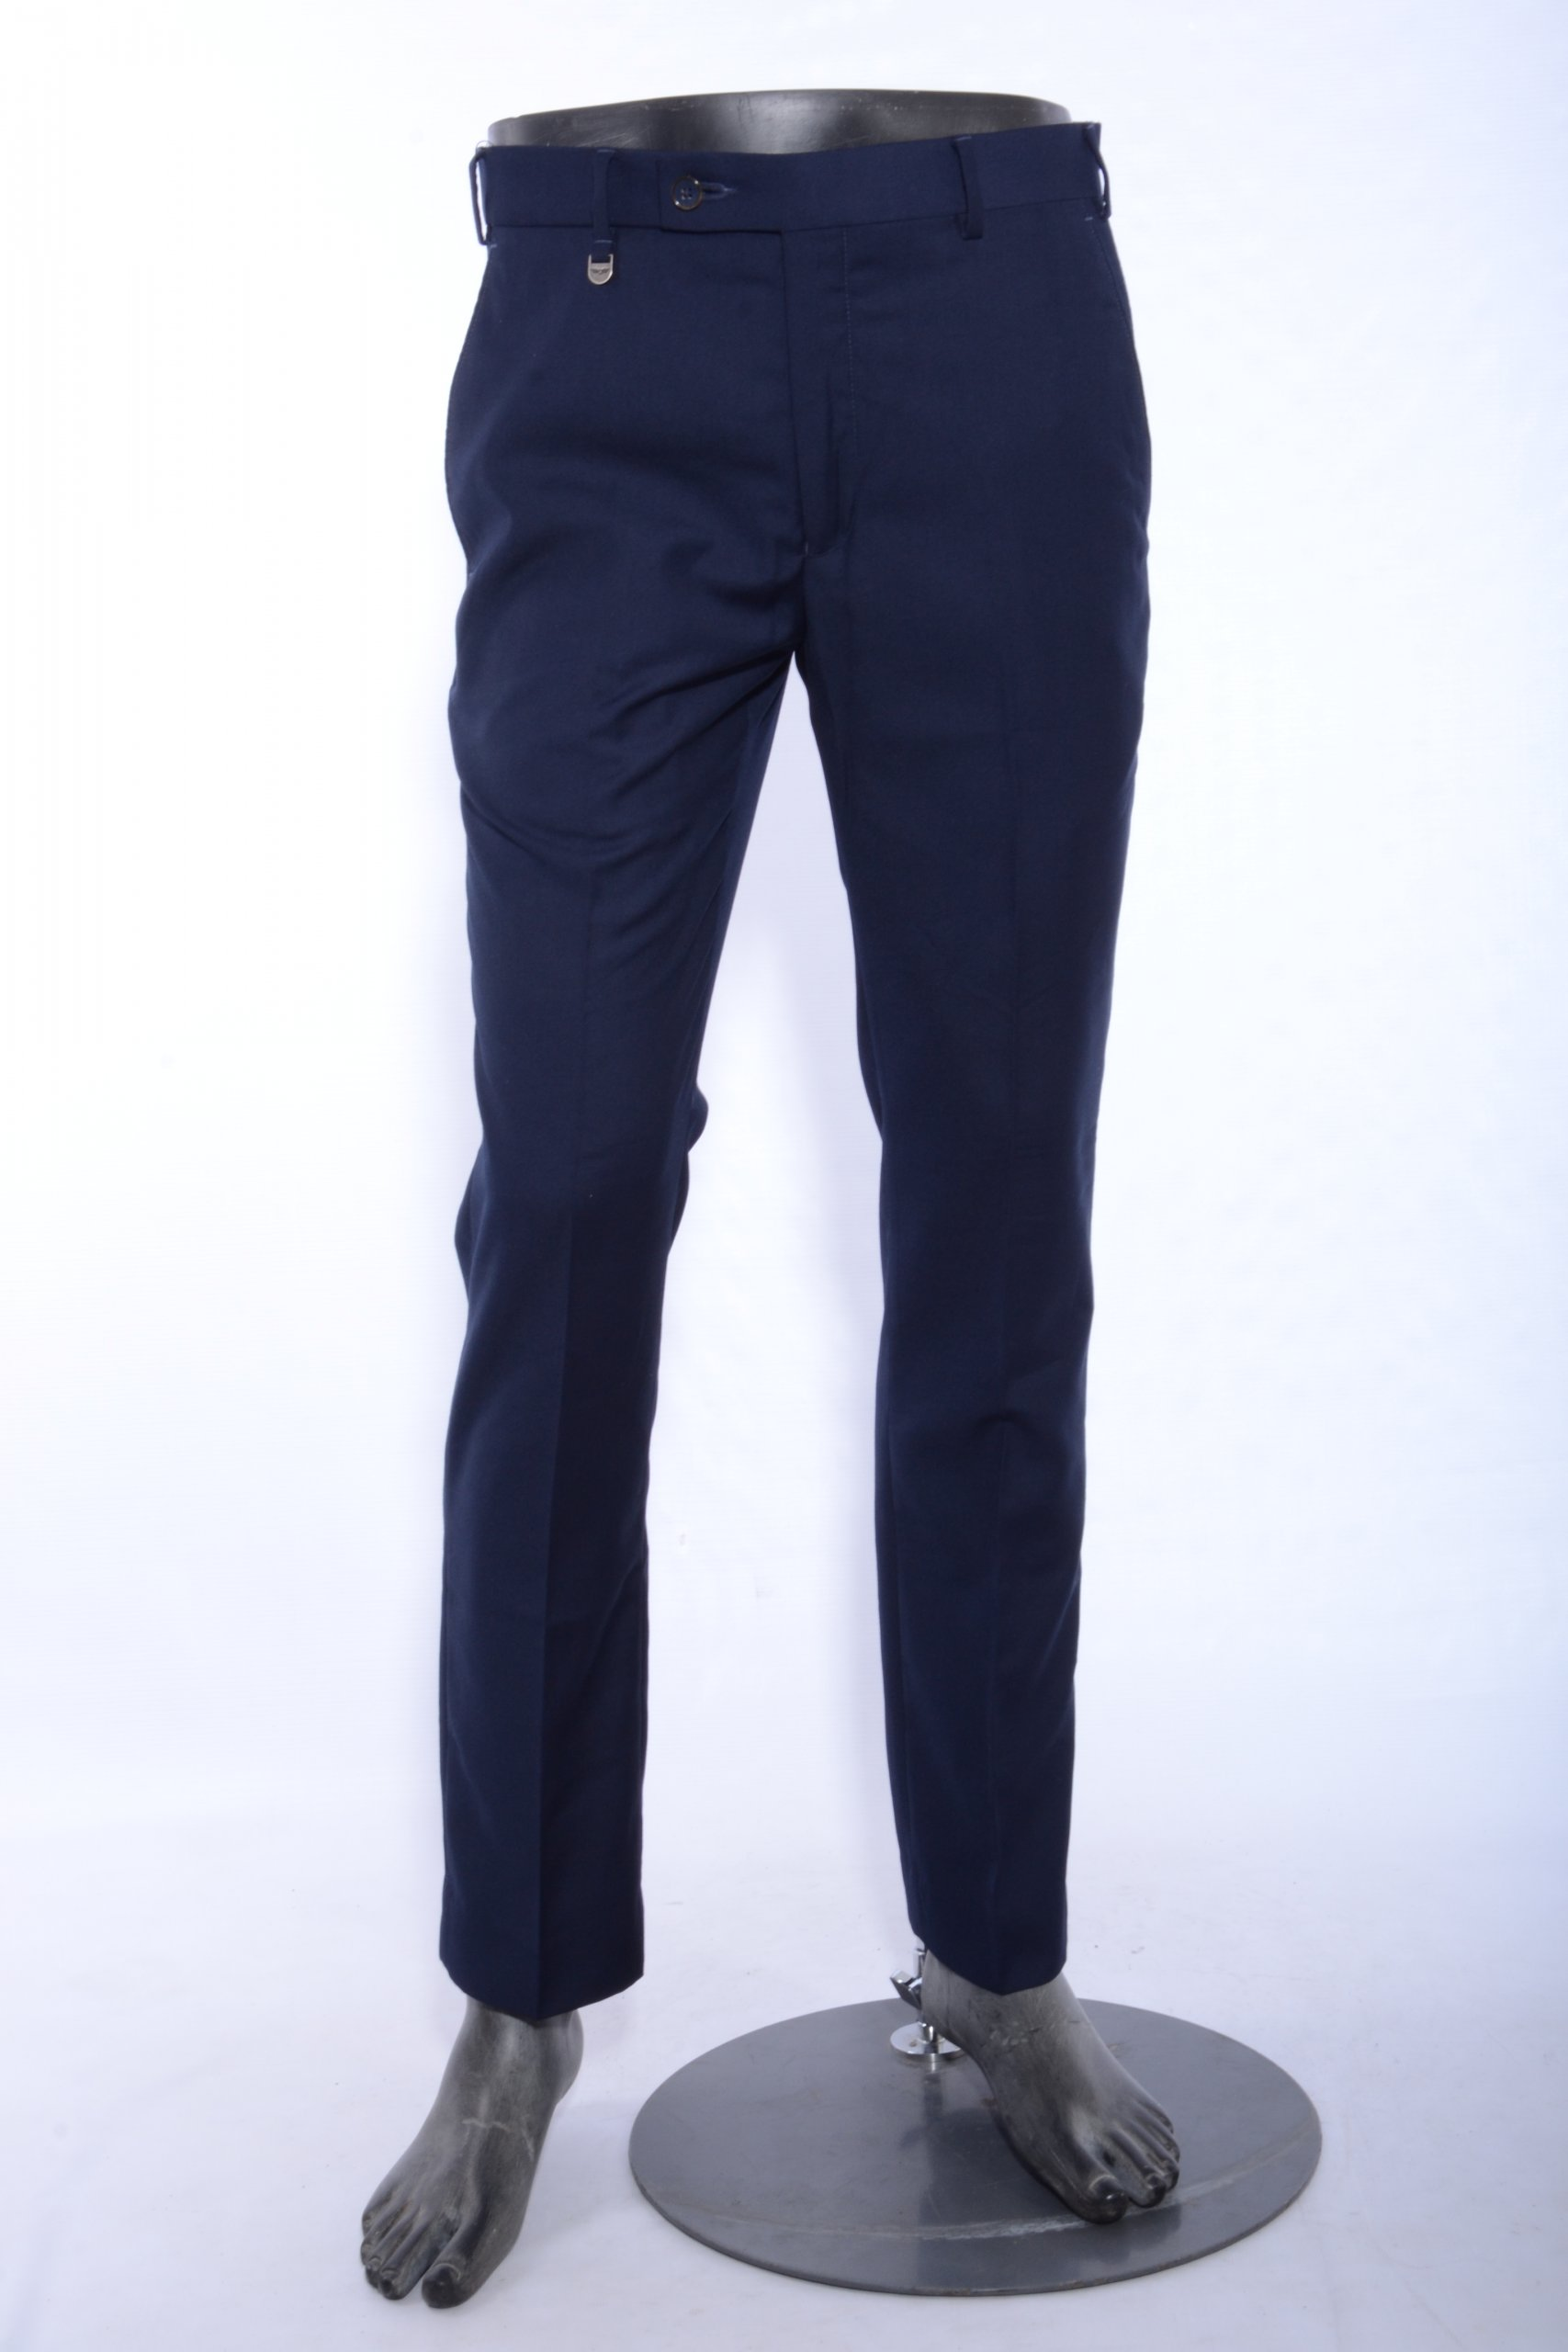 Green Coloured Trouser by Park Avenue